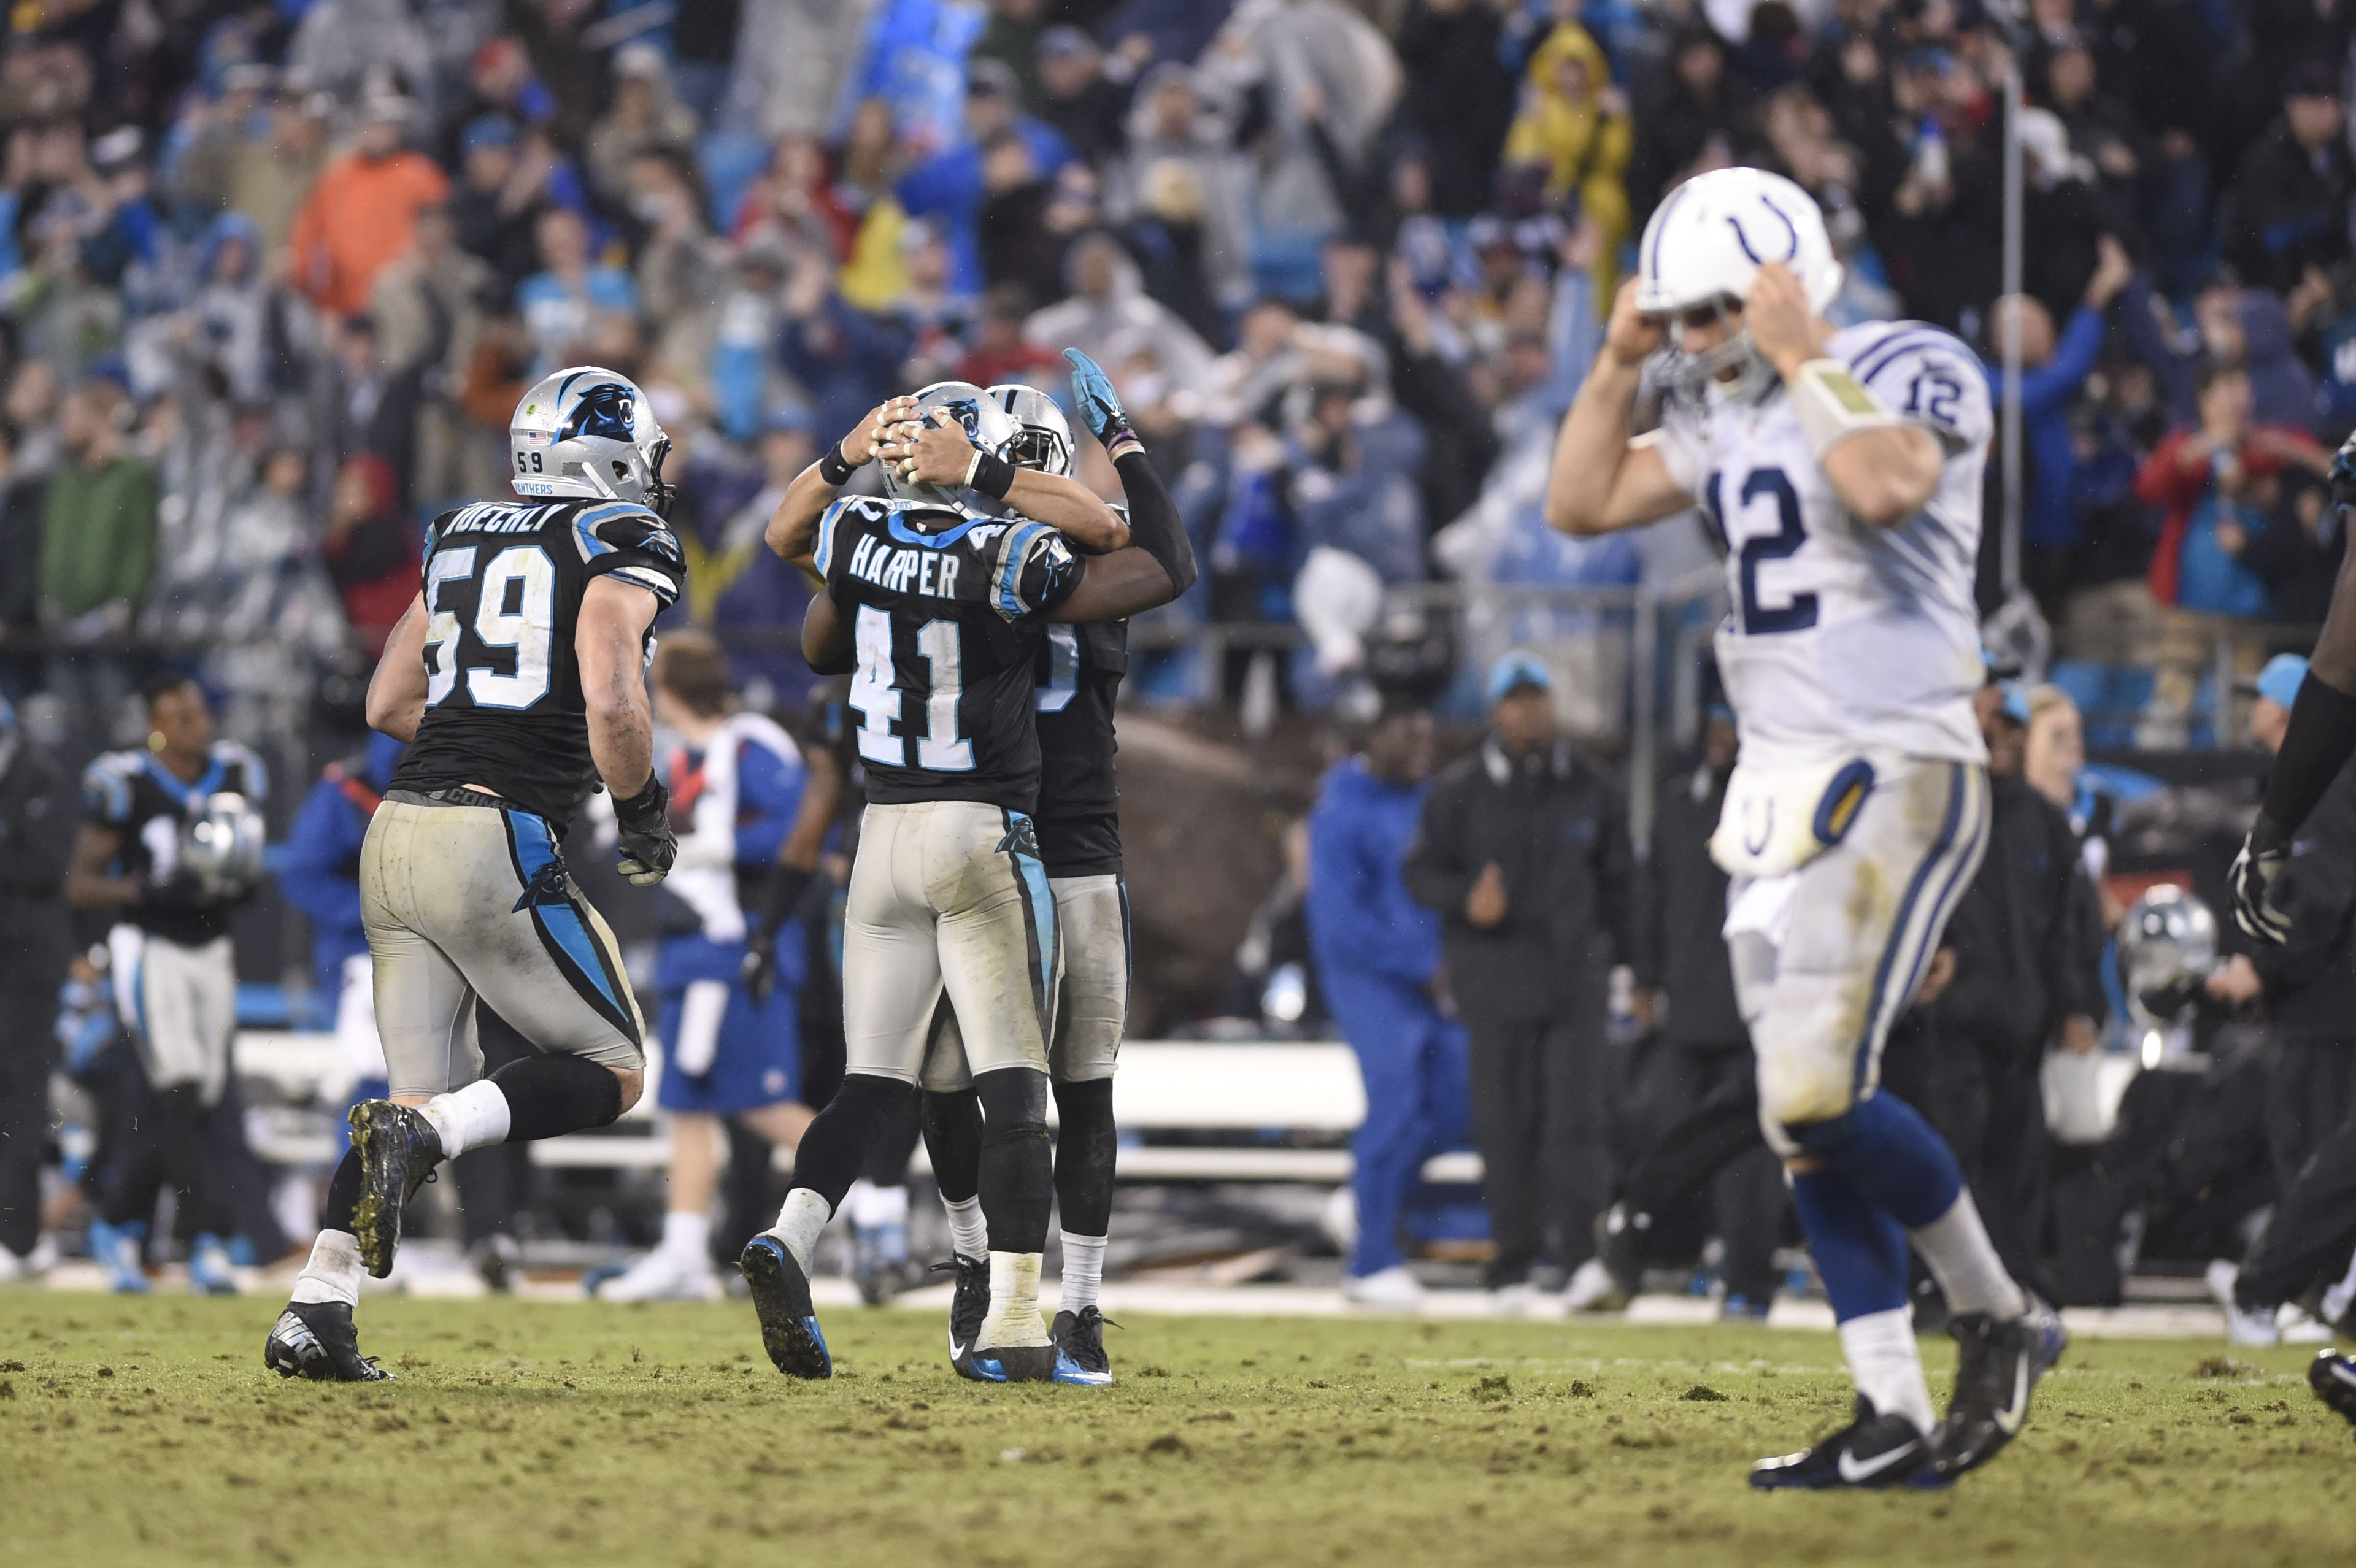 Nov 2, 2015; Charlotte, NC, USA; Carolina Panthers strong safety Roman Harper (41) and middle linebacker Luke Kuechly (59) celebrate after Kuechly intercepts the ball in overtime as Indianapolis Colts quarterback Andrew Luck (12) is in the foreground. The Panthers defeated the Colts in overtime 29-26 at Bank of America Stadium. Mandatory Credit: Bob Donnan-USA TODAY Sports